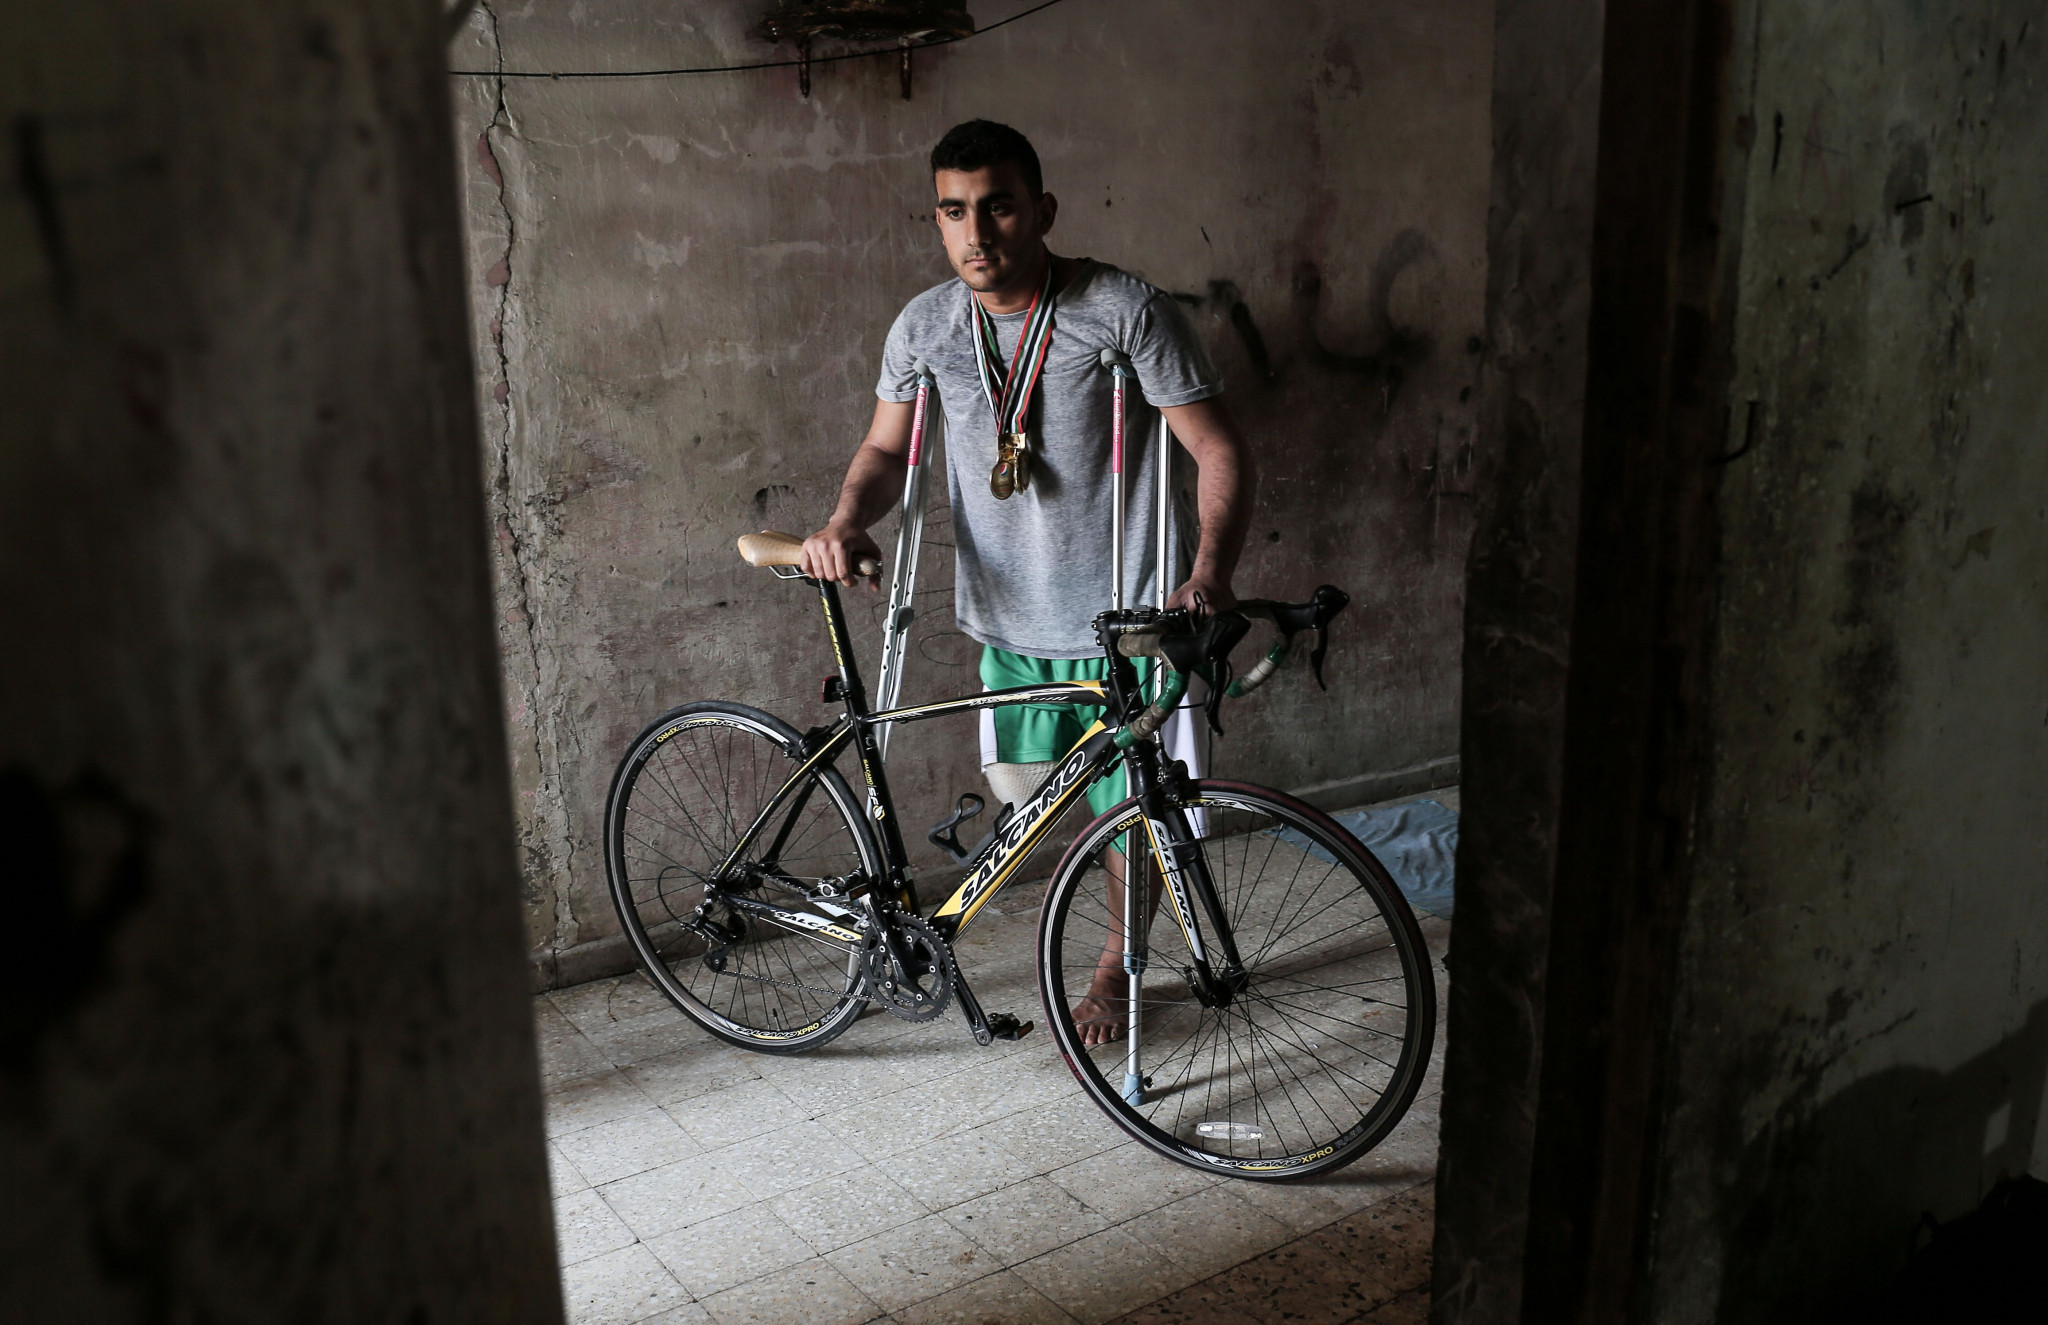 Palestinian cyclist shot in Gaza misses chance to compete at Asian Para Games